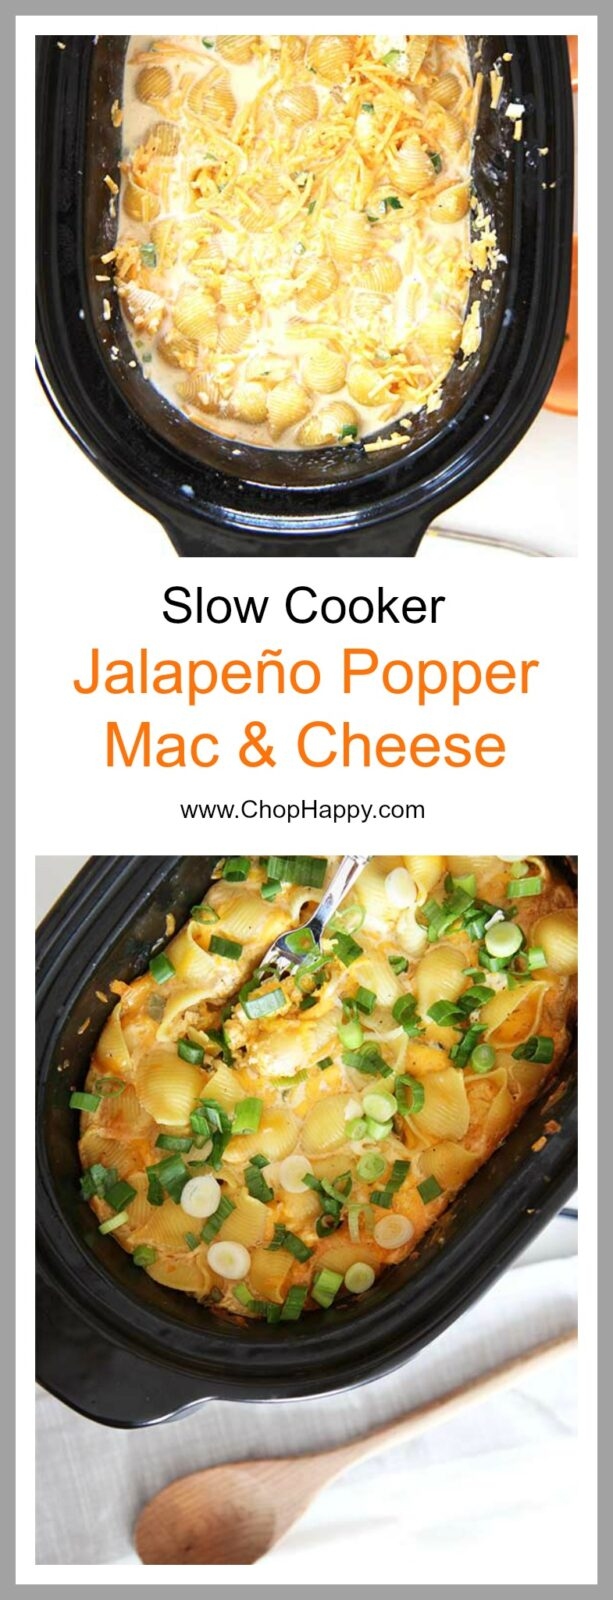 Slow Cooker Jalapeño Mac and Cheese Recipe - will make your whole day because it cooks while you are at work. This cheesy, creamy, dinner recipe is so fun to make. Just dump all the ingredients in the slow cooker (including dry pasta), and that is it! www.ChopHappy.com